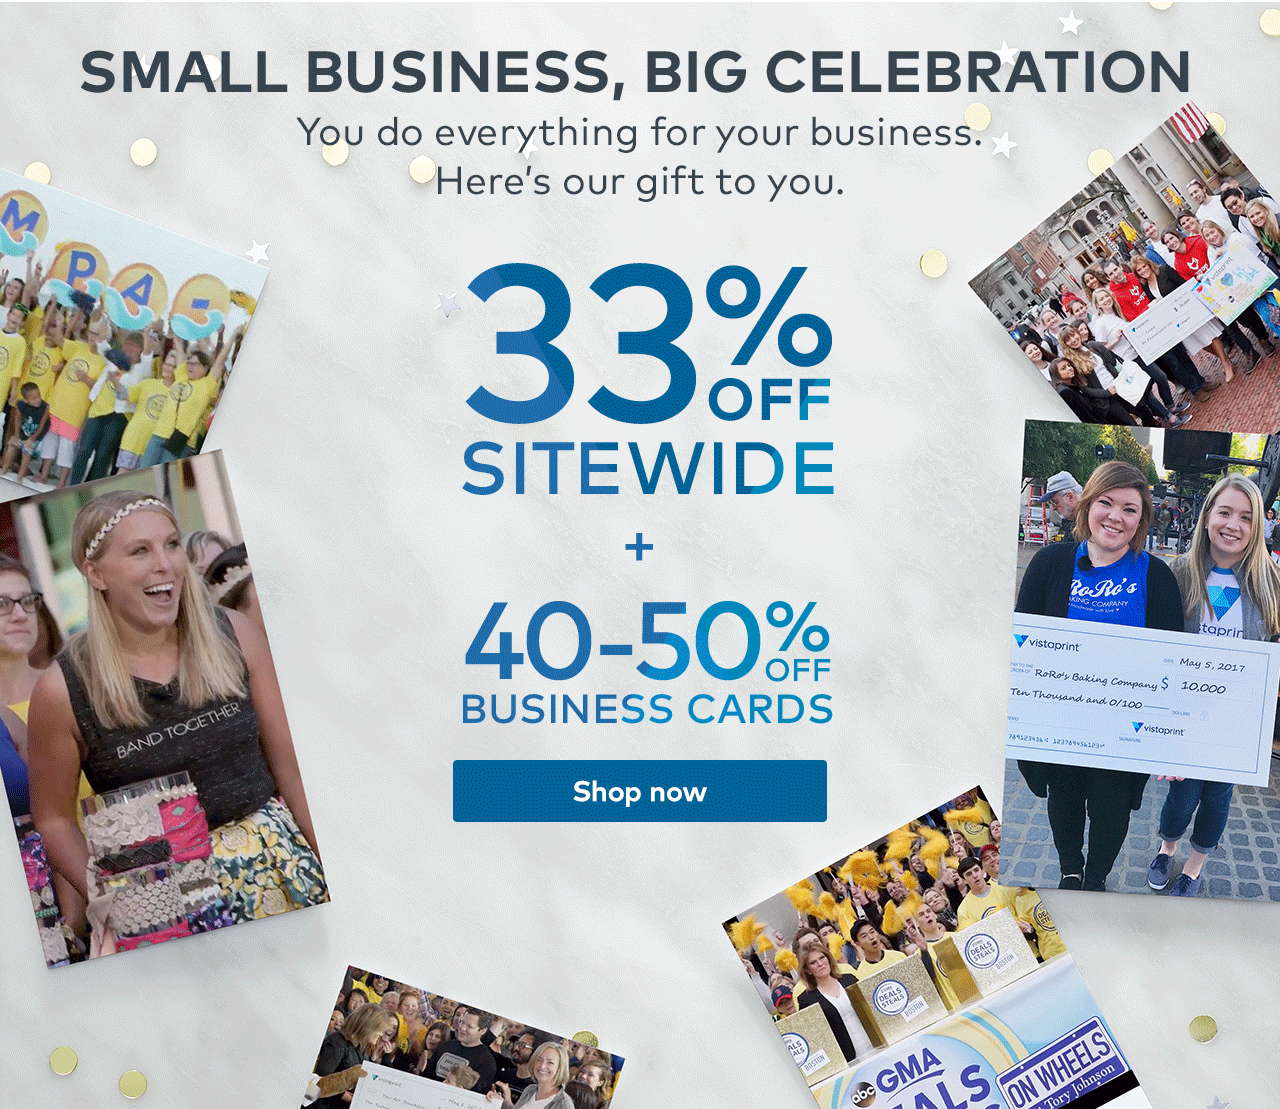 Vistaprint: 33% off sitewide + 40-50% off business cards = more ...